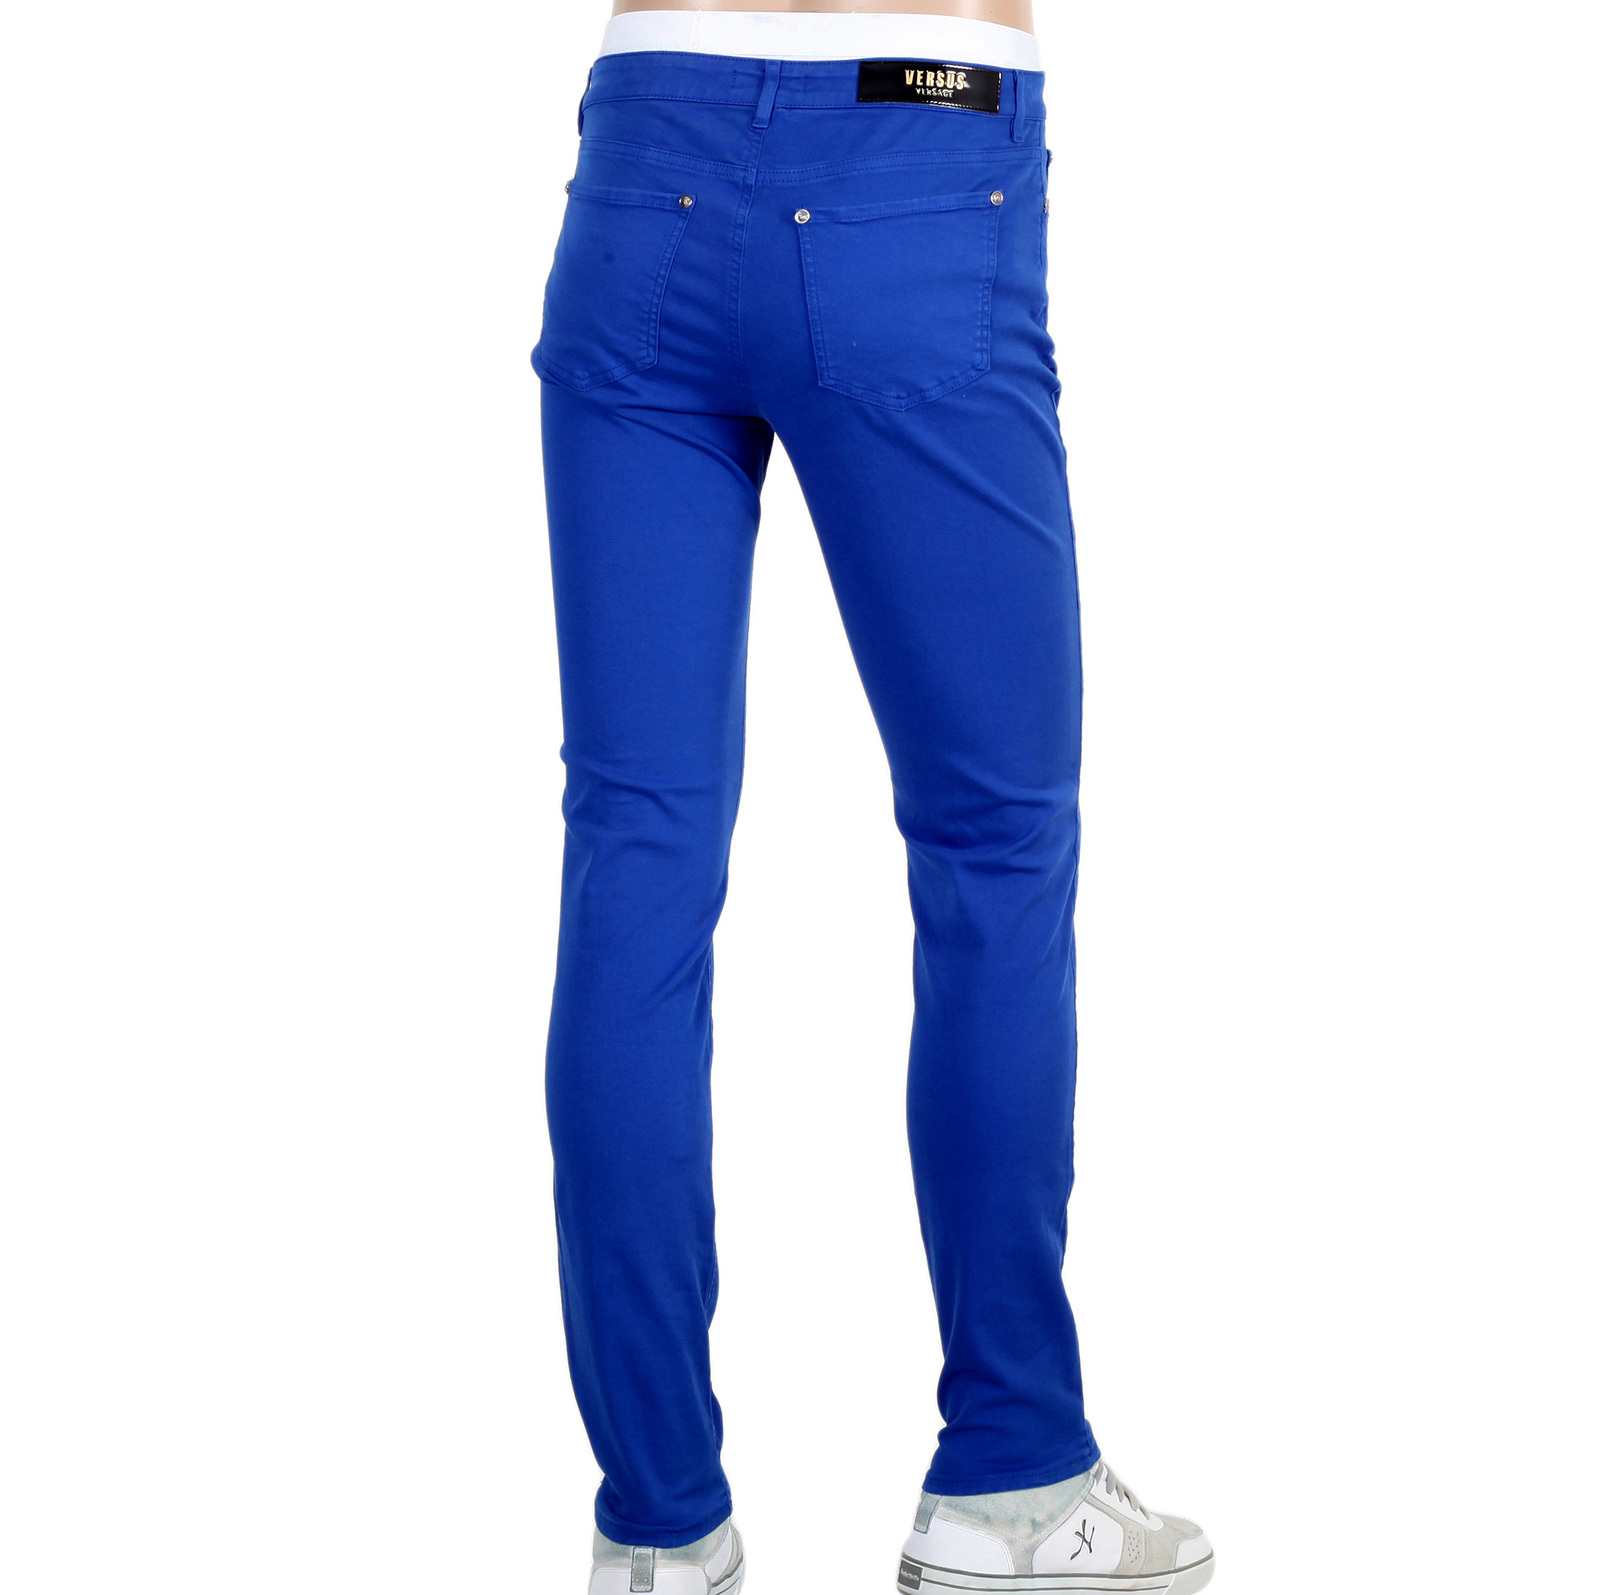 Buy Now! Versace blue slim fit jeans   Togged shop